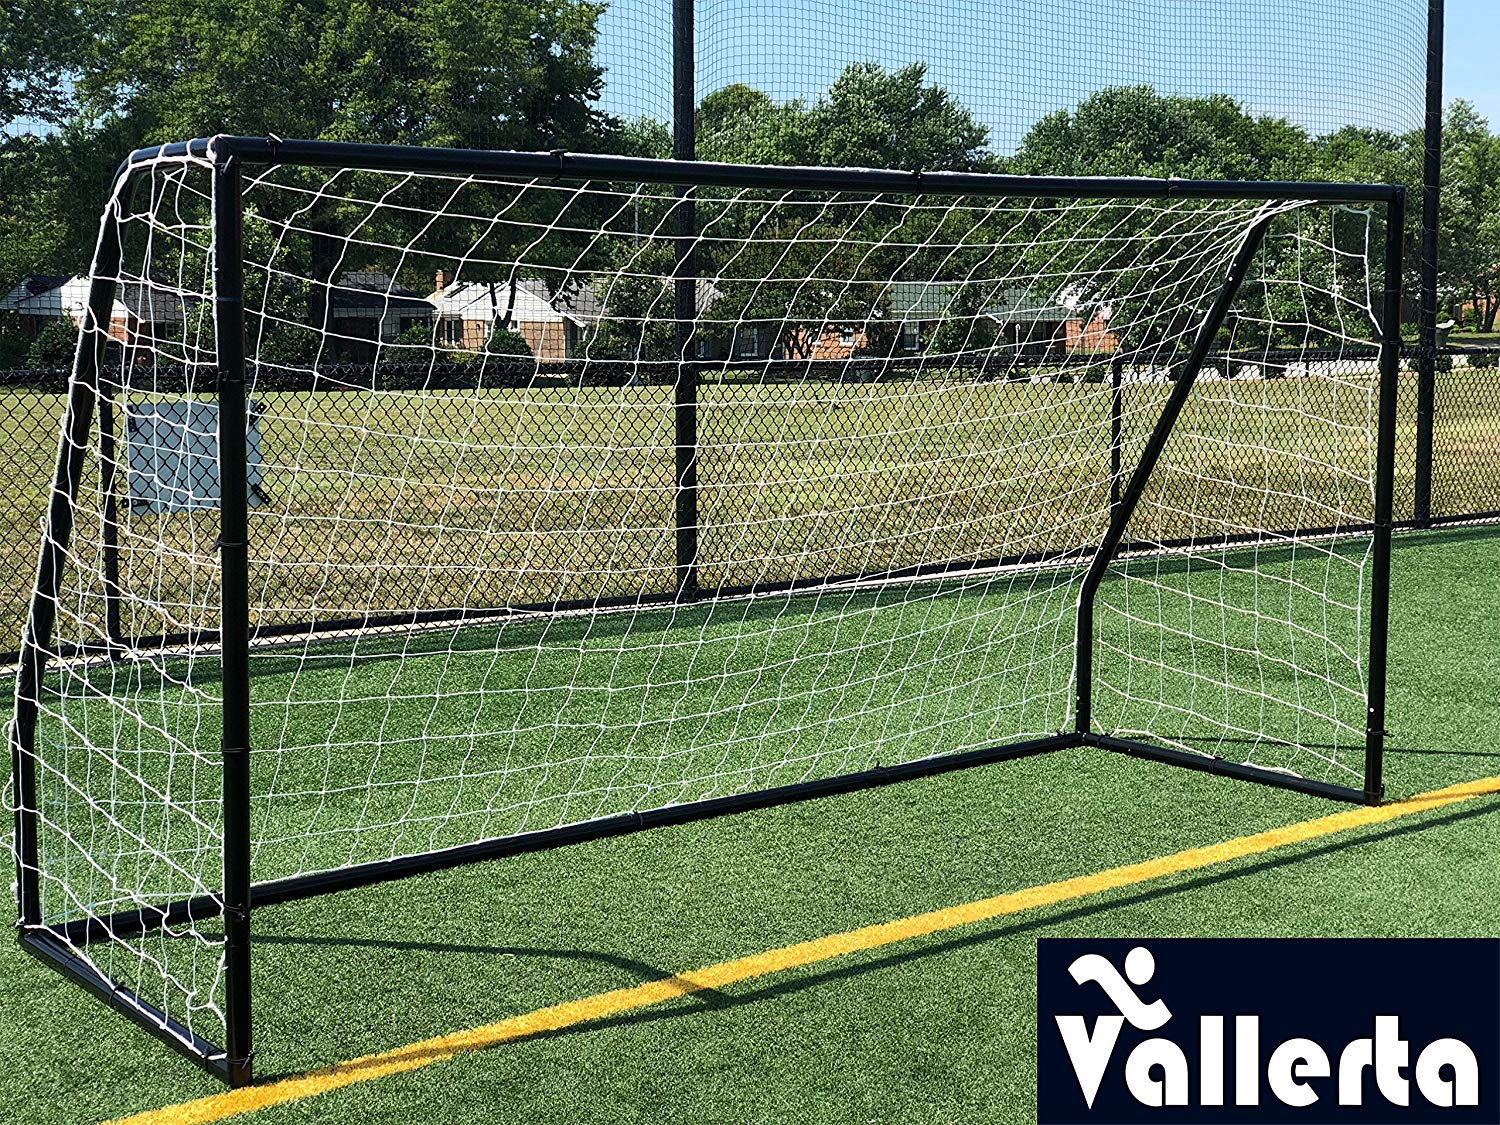 b6194e7a7 Get Quotations · Vallerta Premier 12 X 6 Ft. AYSO Youth Regulation Size Soccer  Goal w/Weatherproof